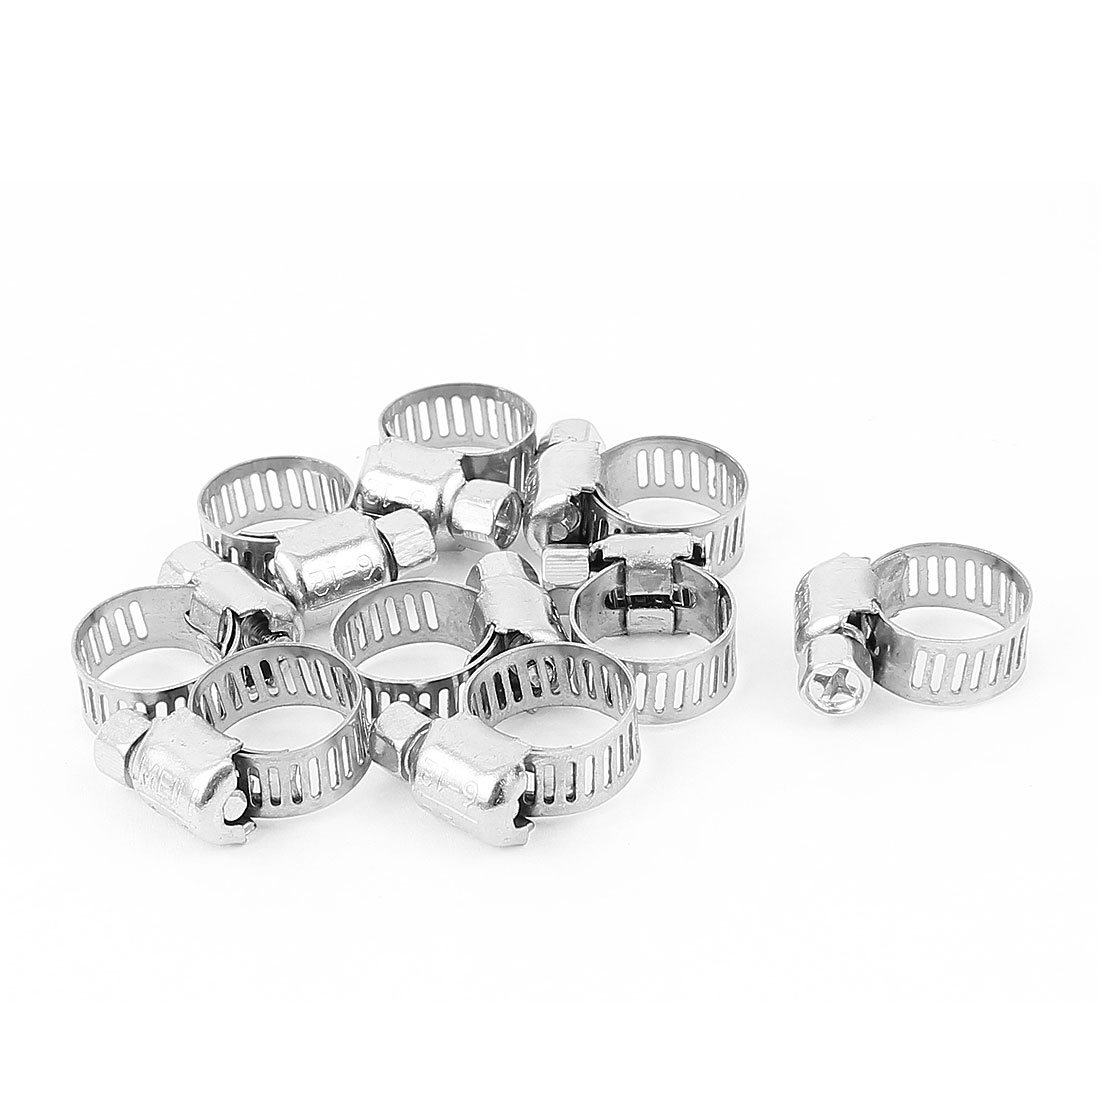 Adjustable 6mm-12mm Stainless Steel Worm Gear Hose Clamps 9pcs